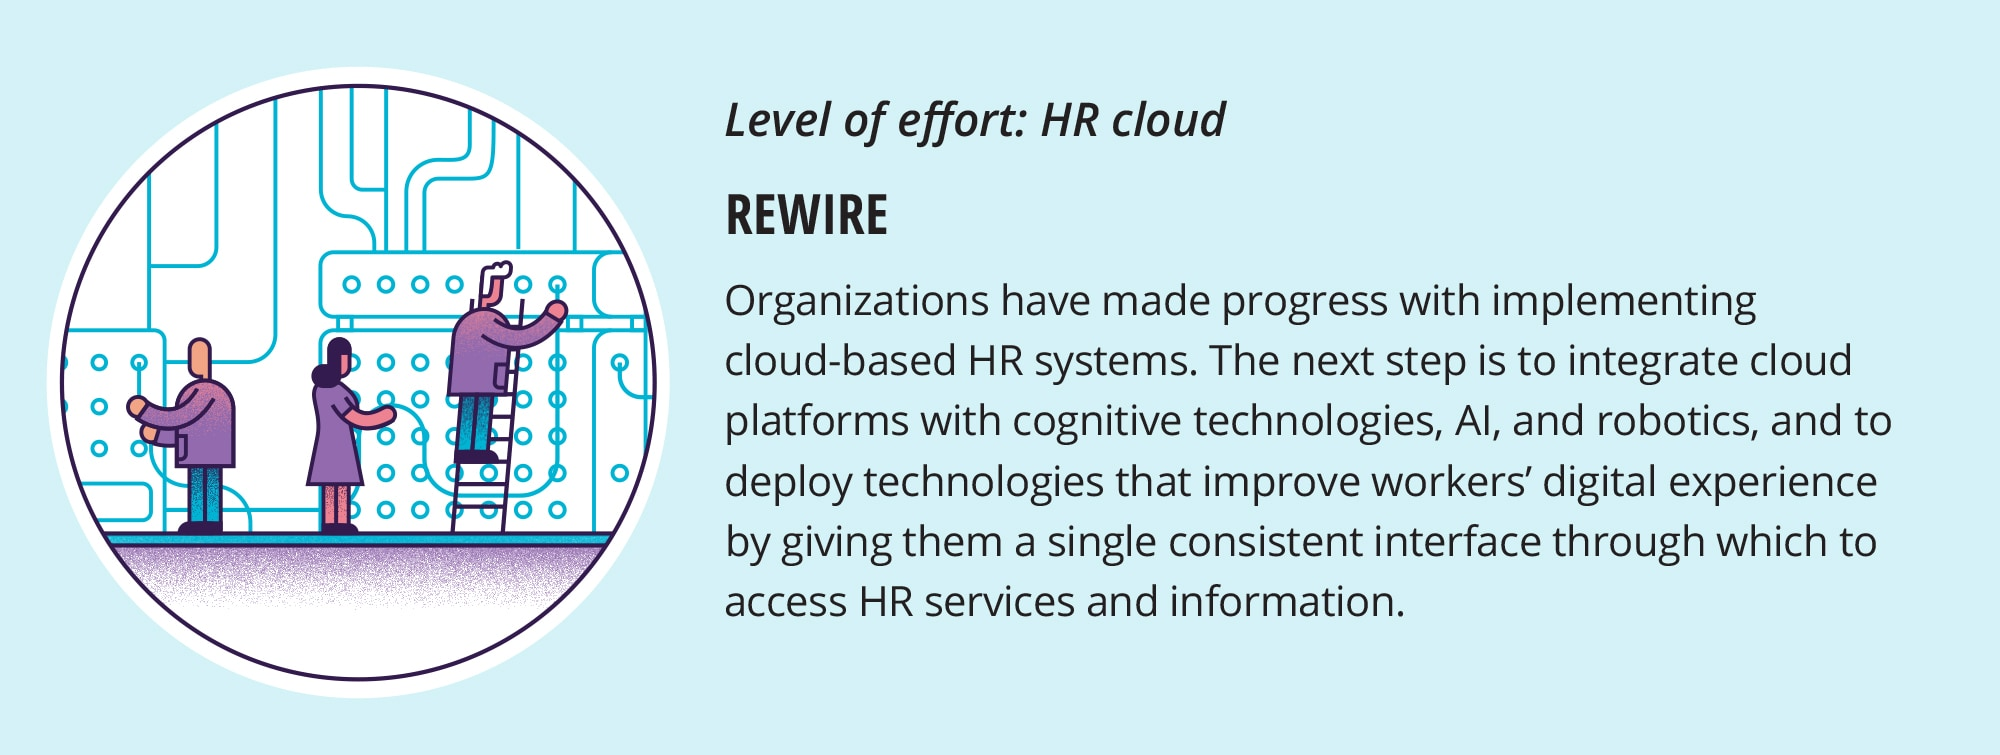 Level of effort: HR cloud